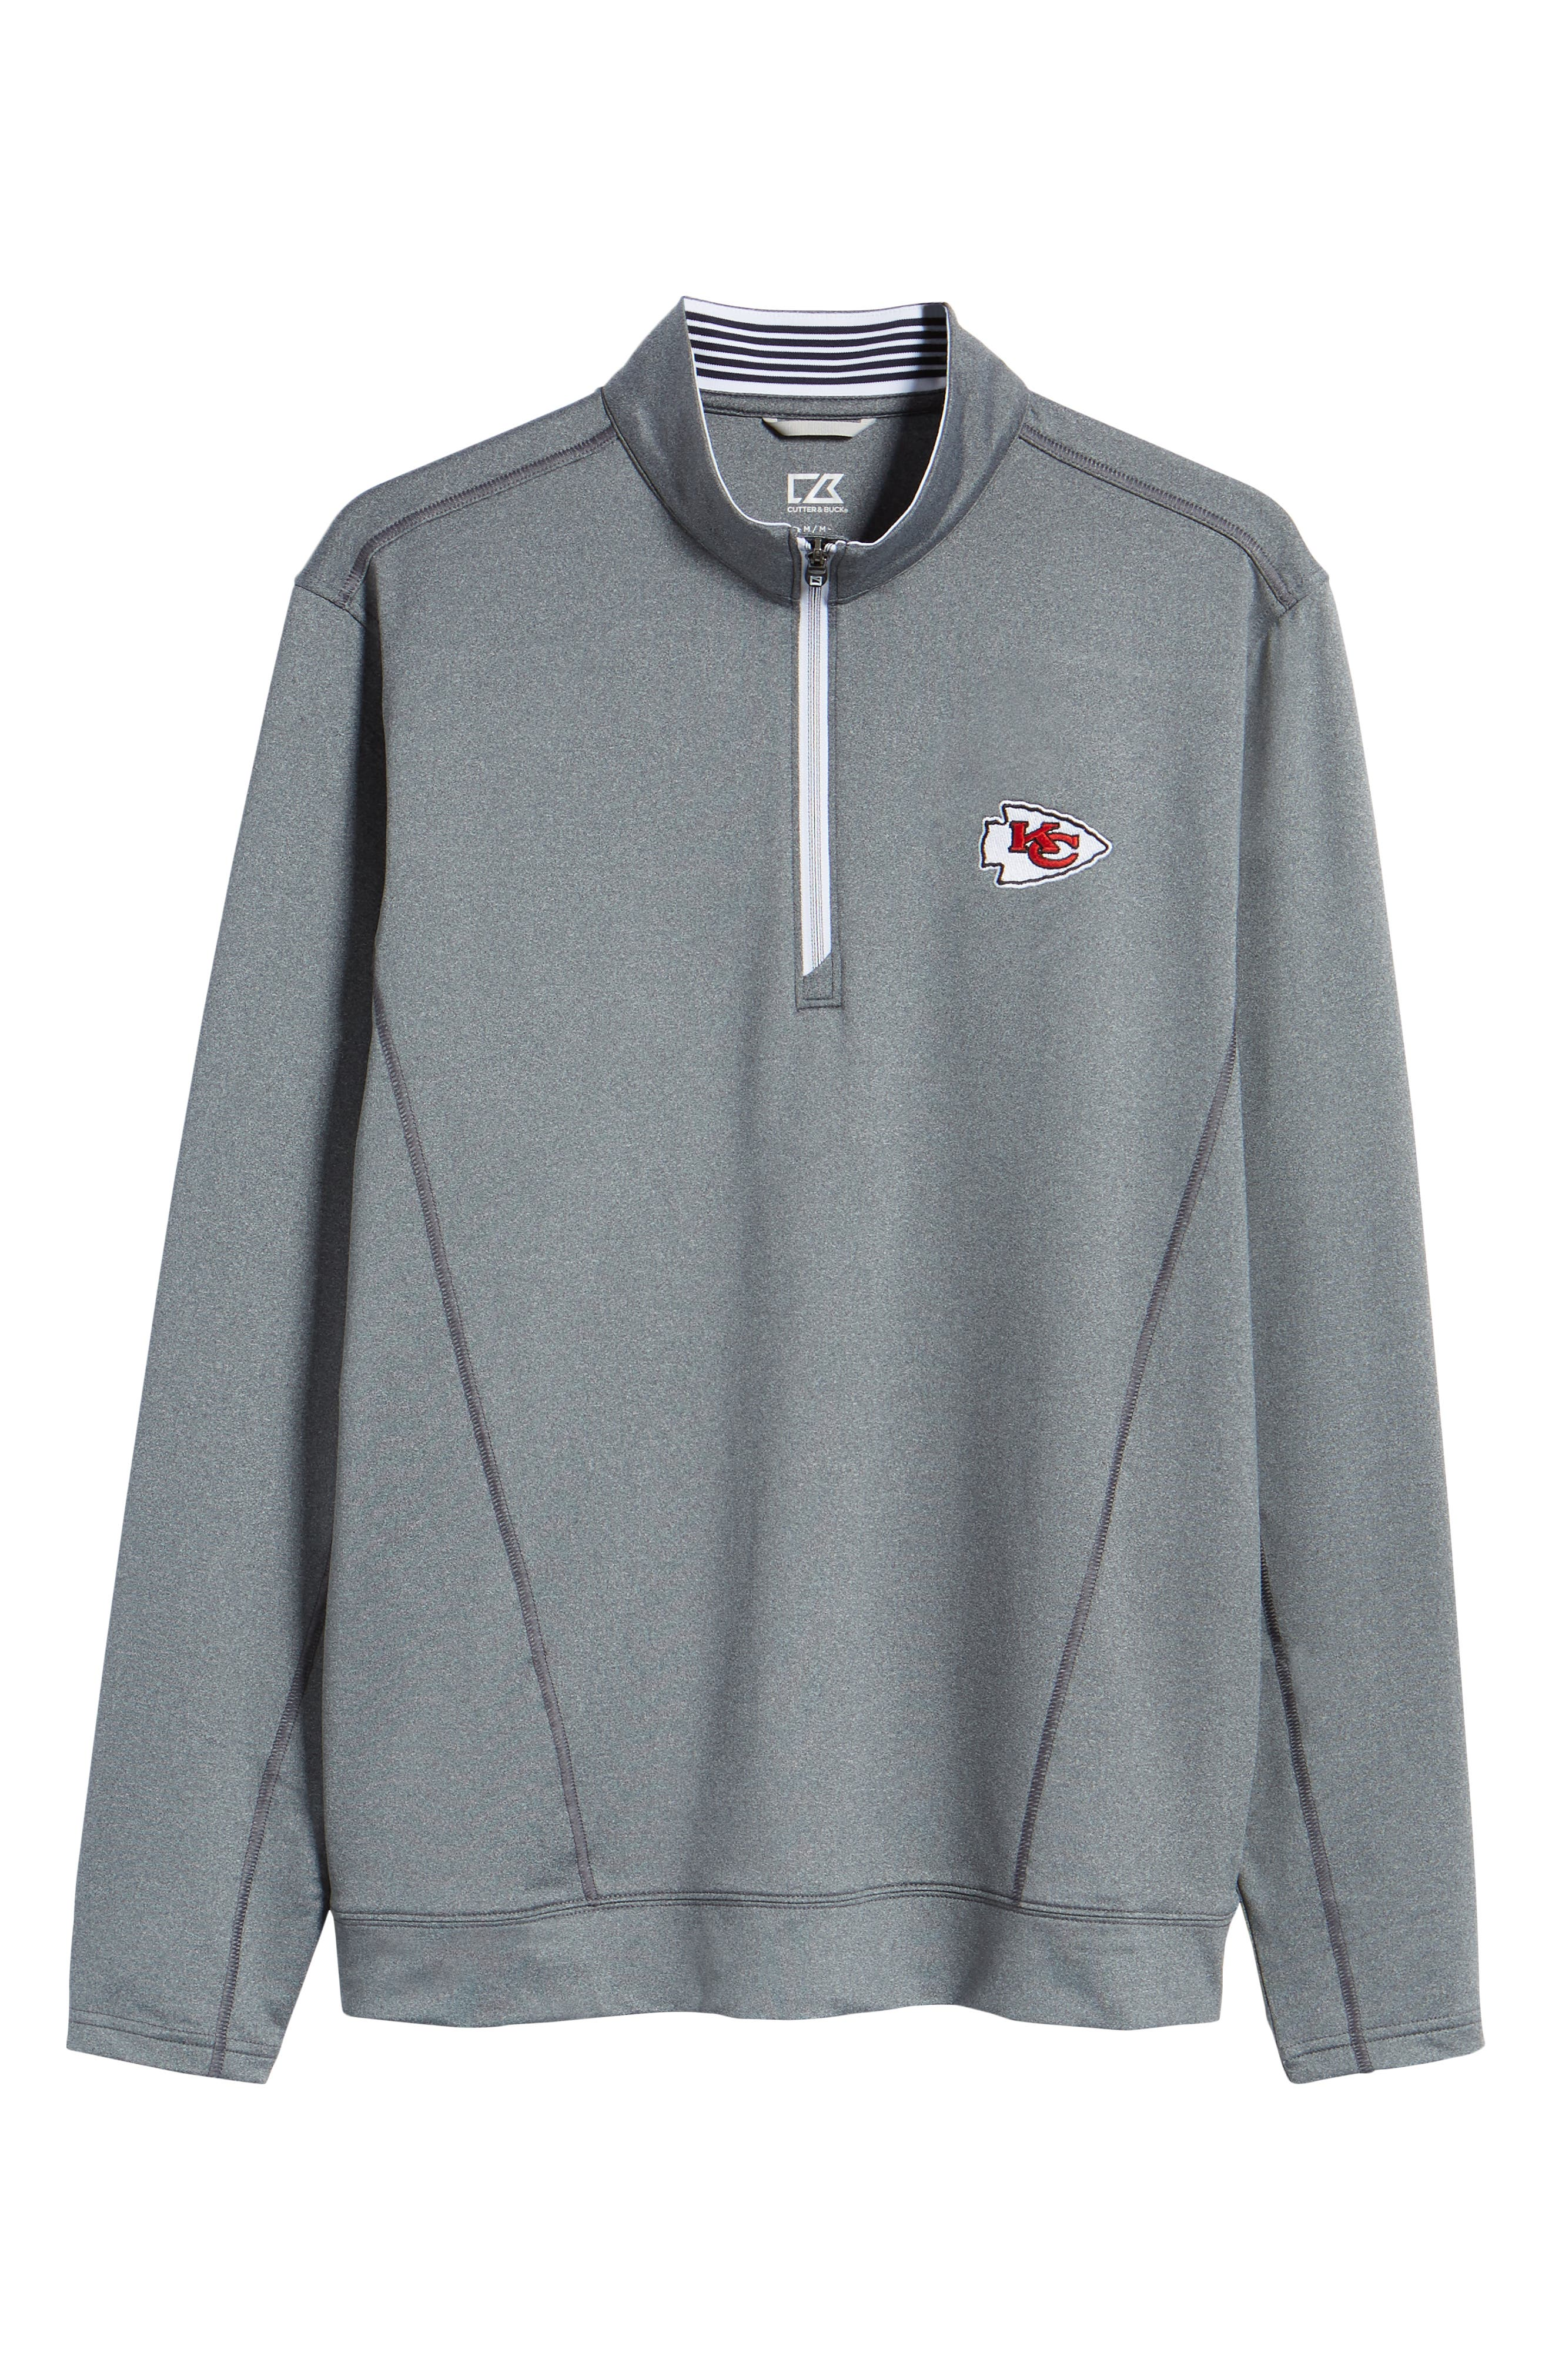 Endurance Kansas City Chiefs Regular Fit Pullover,                             Alternate thumbnail 6, color,                             CHARCOAL HEATHER